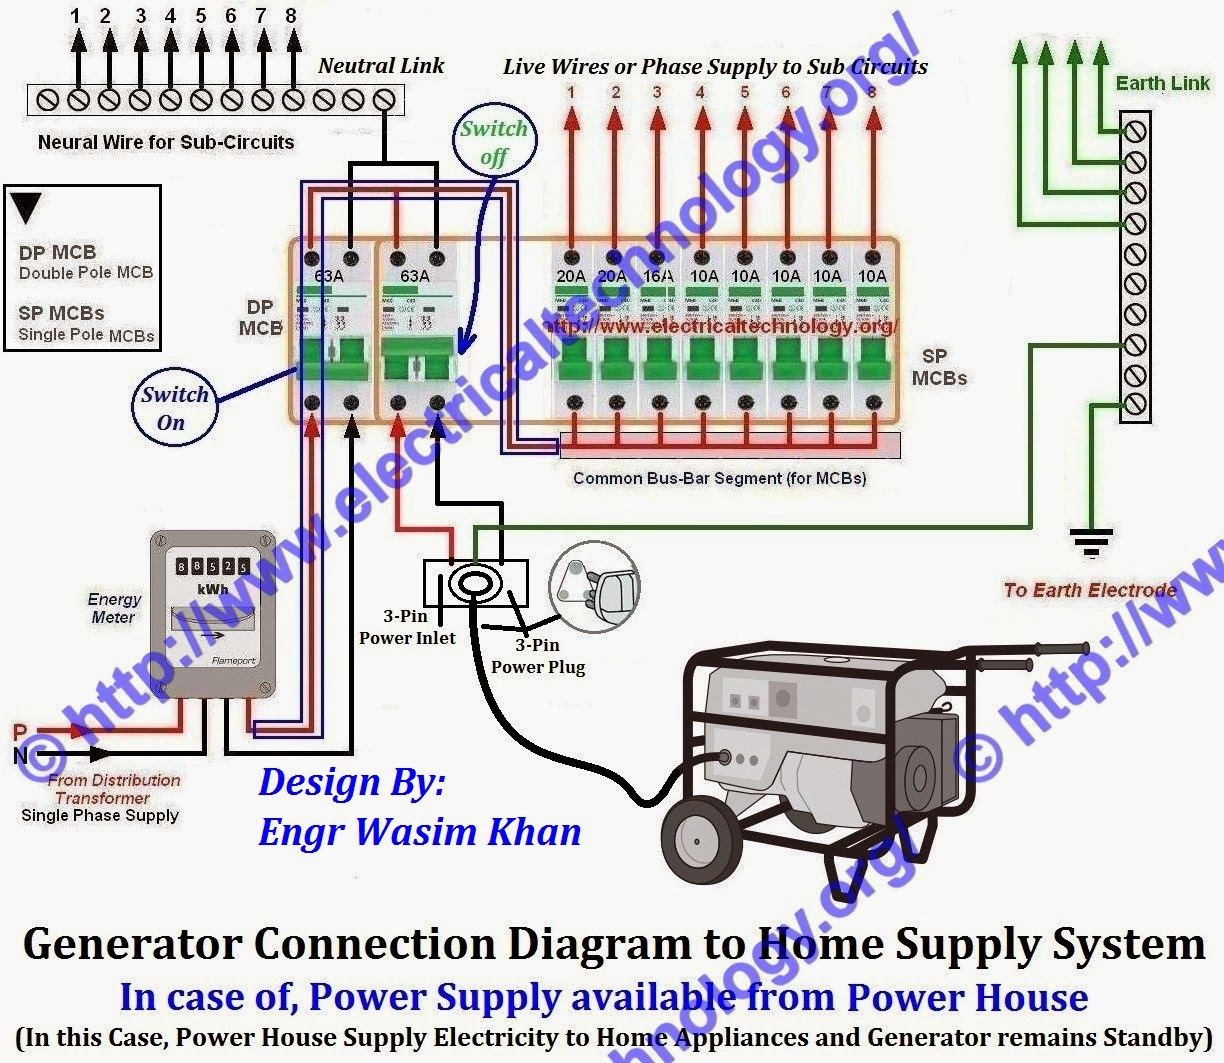 Home Generator Wiring Diy - Wiring Diagram Online on 3 phase motor connection diagram, ceiling fan installation diagram, 3 phase generator diagram, 3 phase thermostat diagram, 3 phase regulator, 3 phase cable, 3 phase block diagram, 3 phase connector diagram, 3 phase electric panel diagrams, 3 phase power, 3 phase relay, 3 phase transformers diagram, 3 phase coil diagram, 3 phase electricity diagram, 3 phase converter diagram, 3 phase circuit, 3 phase inverter diagram, 3 phase schematic diagrams, 3 phase wire, 3 phase plug,